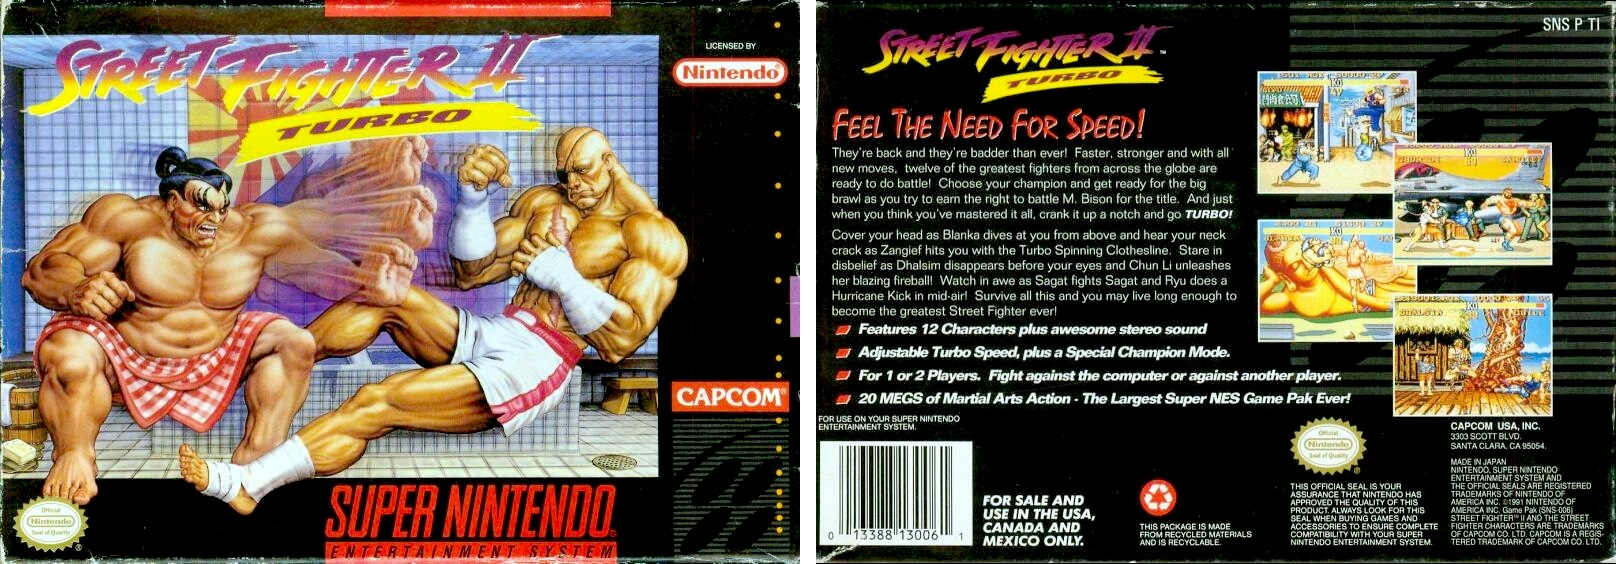 """Image For Post   **Re-released**   Nintendo re-released Hyper Fighting in September 2017 as part of the company's Super NES Classic Edition.  **Other releases**   The Sega Genesis version, Street Fighter 2: Special Champion Edition, while based primarily on Champion Edition, allows players to play the game with Hyper Fighting rules as well. The game's content is almost identical to the SNES version of Street Fighter II Turbo.  Hyper Fighting is included in Street Fighter Collection 2 (Capcom Generation 5) for the Sega Saturn and PlayStation. The PlayStation port was later included in Capcom Classics Collection Vol. 1 for PlayStation 2 and Xbox, as well as Capcom Classics Collection: Reloaded for the PlayStation Portable. A stand-alone re-release of Hyper Fighting was also released for the Xbox 360 via Xbox Live Arcade which features an online versus mode. It was also released for the iPod Touch, iPhone, iPad, and Android, along with Street Fighter II and Champion Edition, as part of Capcom Arcade.   The title was also later released for the Nintendo 3DS, Wii, Wii U and Switch systems.  **Alternate Titles**       """"Street Fighter II Turbo: Hyper Fighting"""" -- In-game title     """"ストリートファイターII ターボハイパーファイティング"""" -- Japanese spelling"""